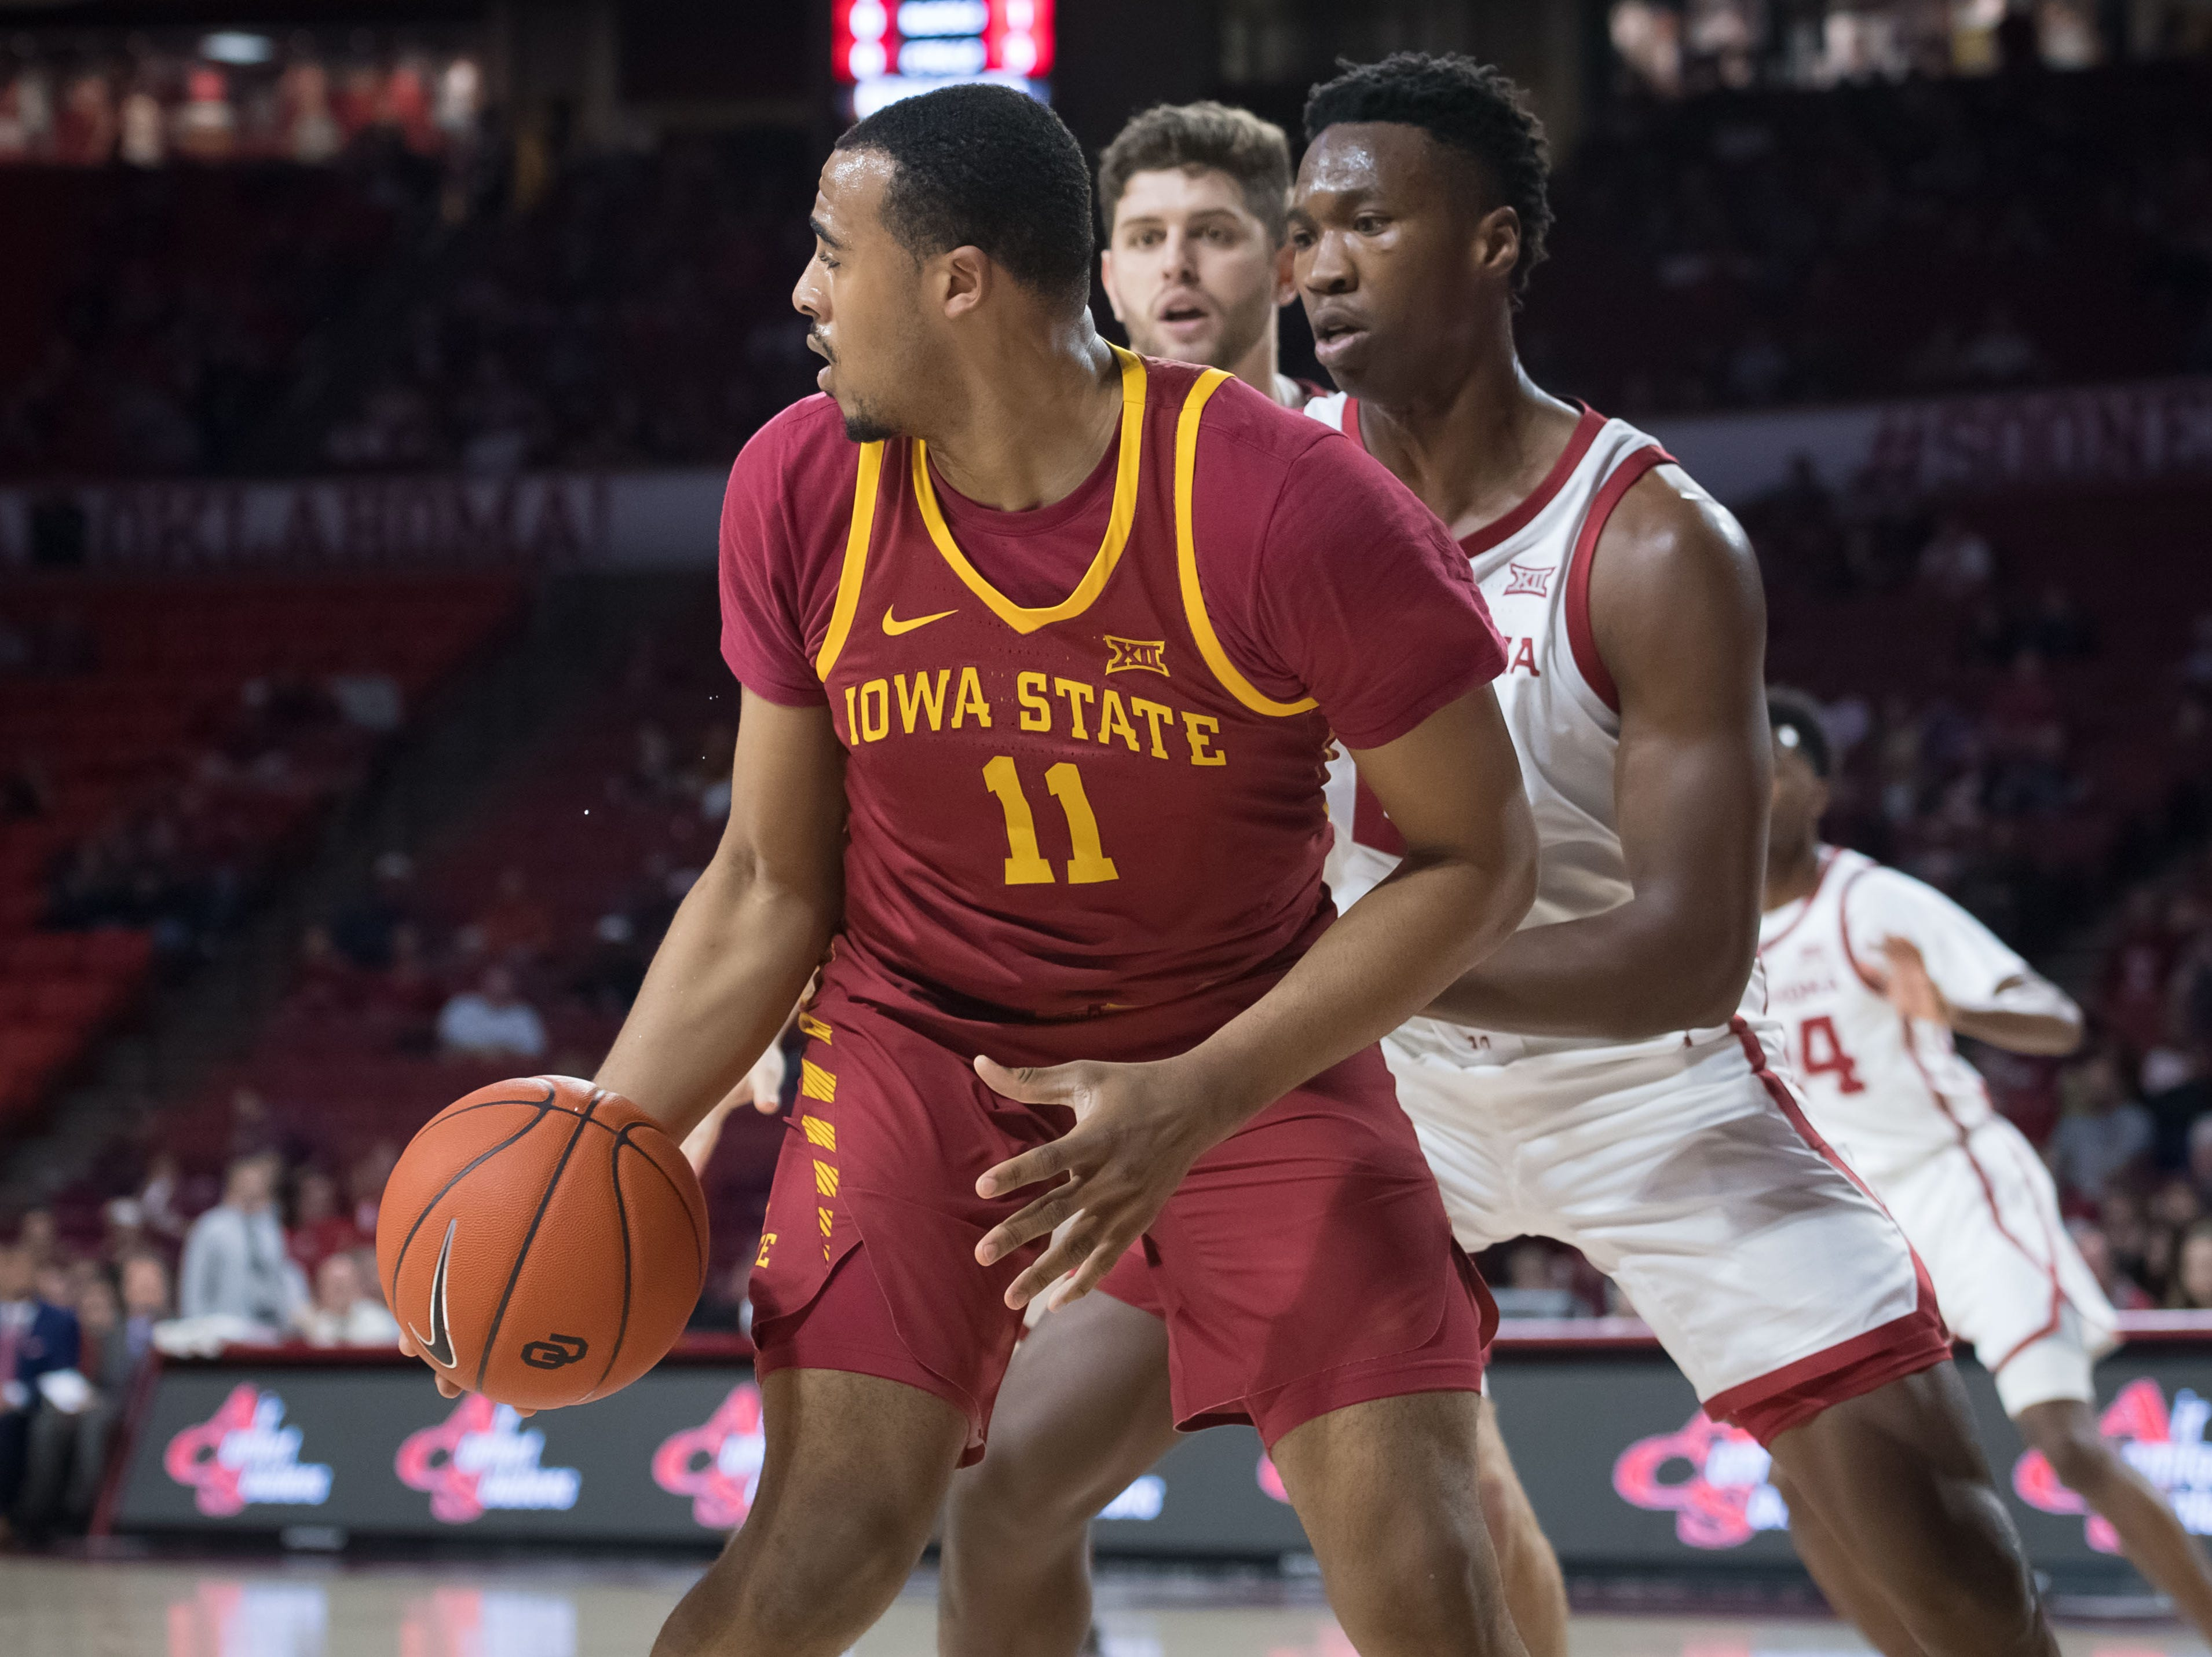 Iowa State Cyclones guard Talen Horton-Tucker (11) fights for position while defended by Oklahoma Sooners forward Kristian Doolittle (21) during the first half at Lloyd Noble Center.